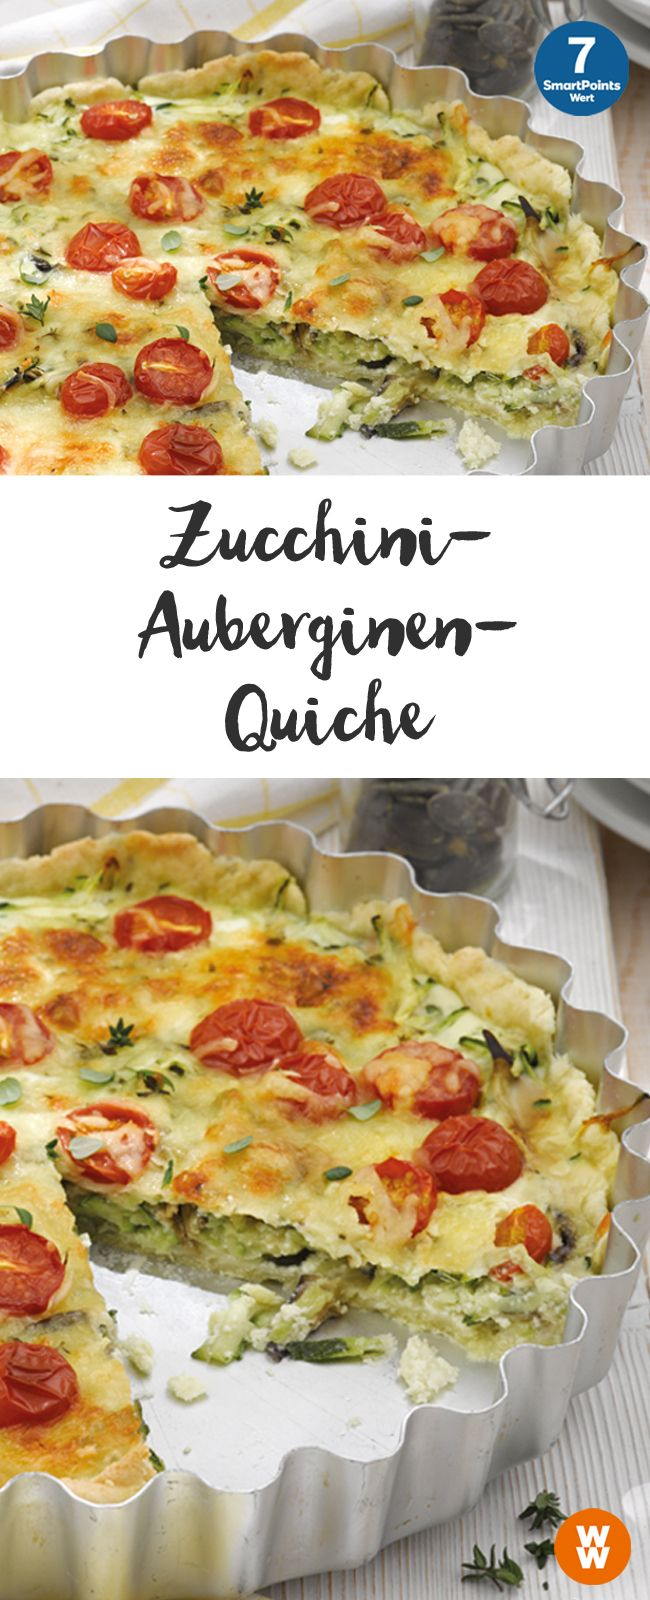 Zucchini-Auberginen-Quiche | 12 Portionen, 5 SmartPoints/Portion, Weight Watchers, fertig in 85 min.